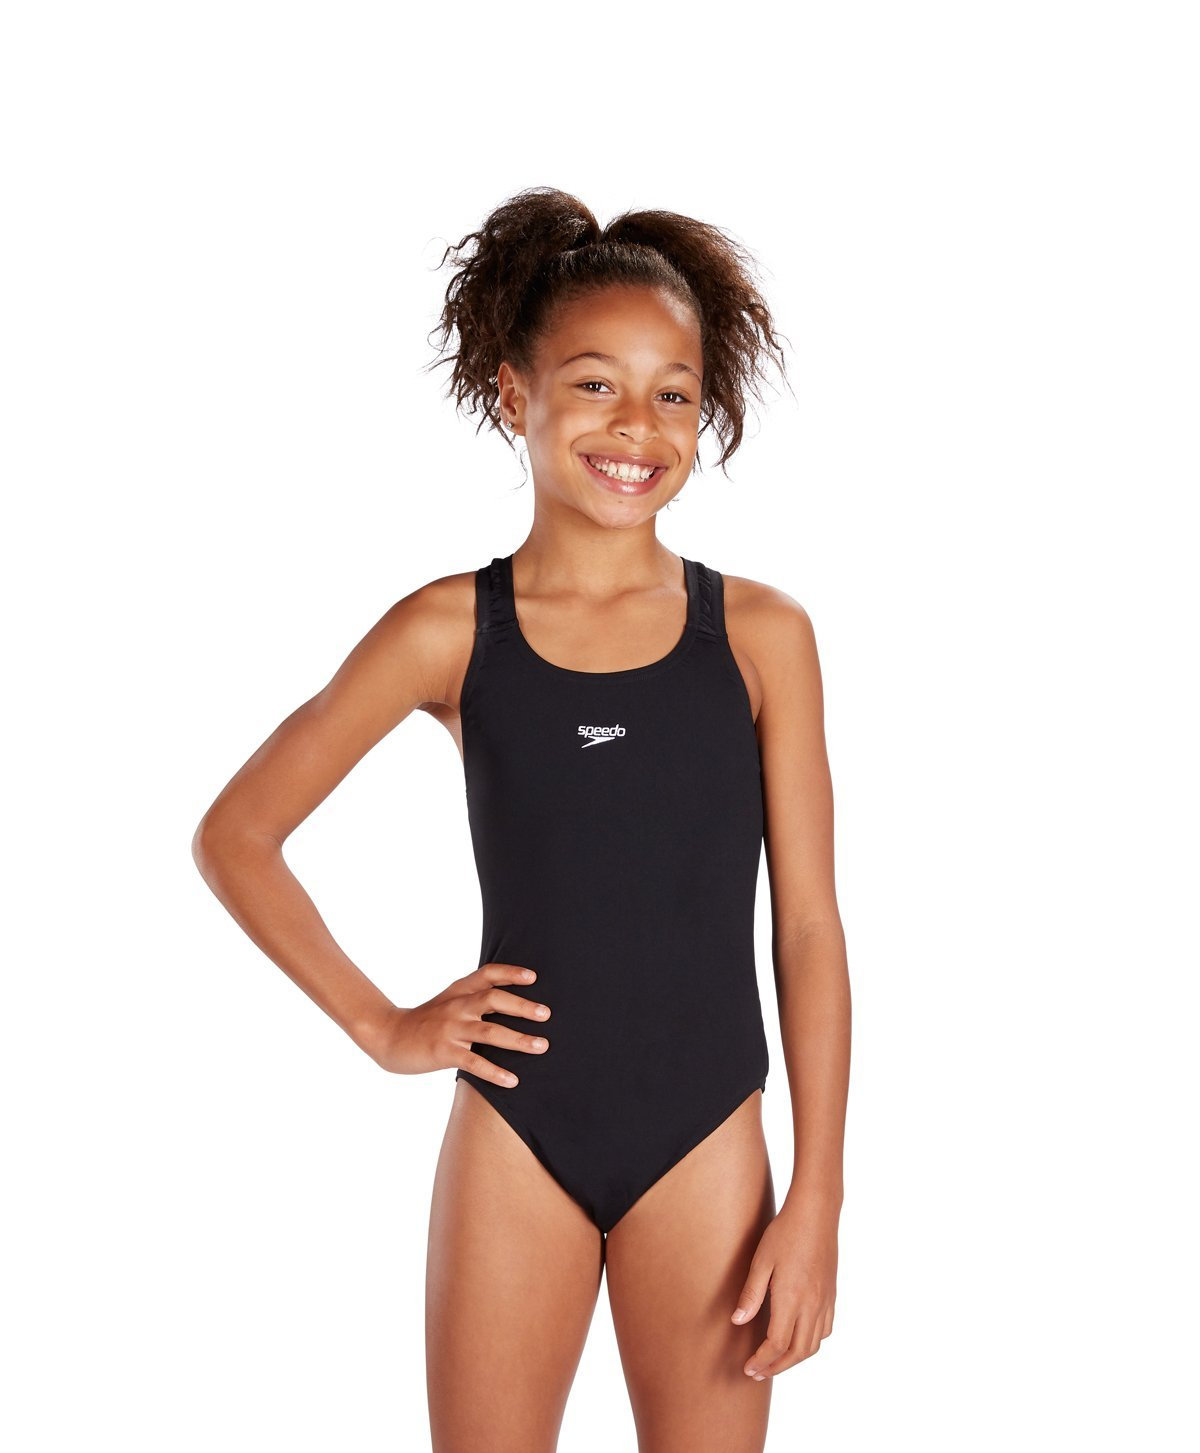 5bdb111abc4df Get Quotations · Speedo Girls Endurance Plus Medalist Swimsuit in Black or  Red